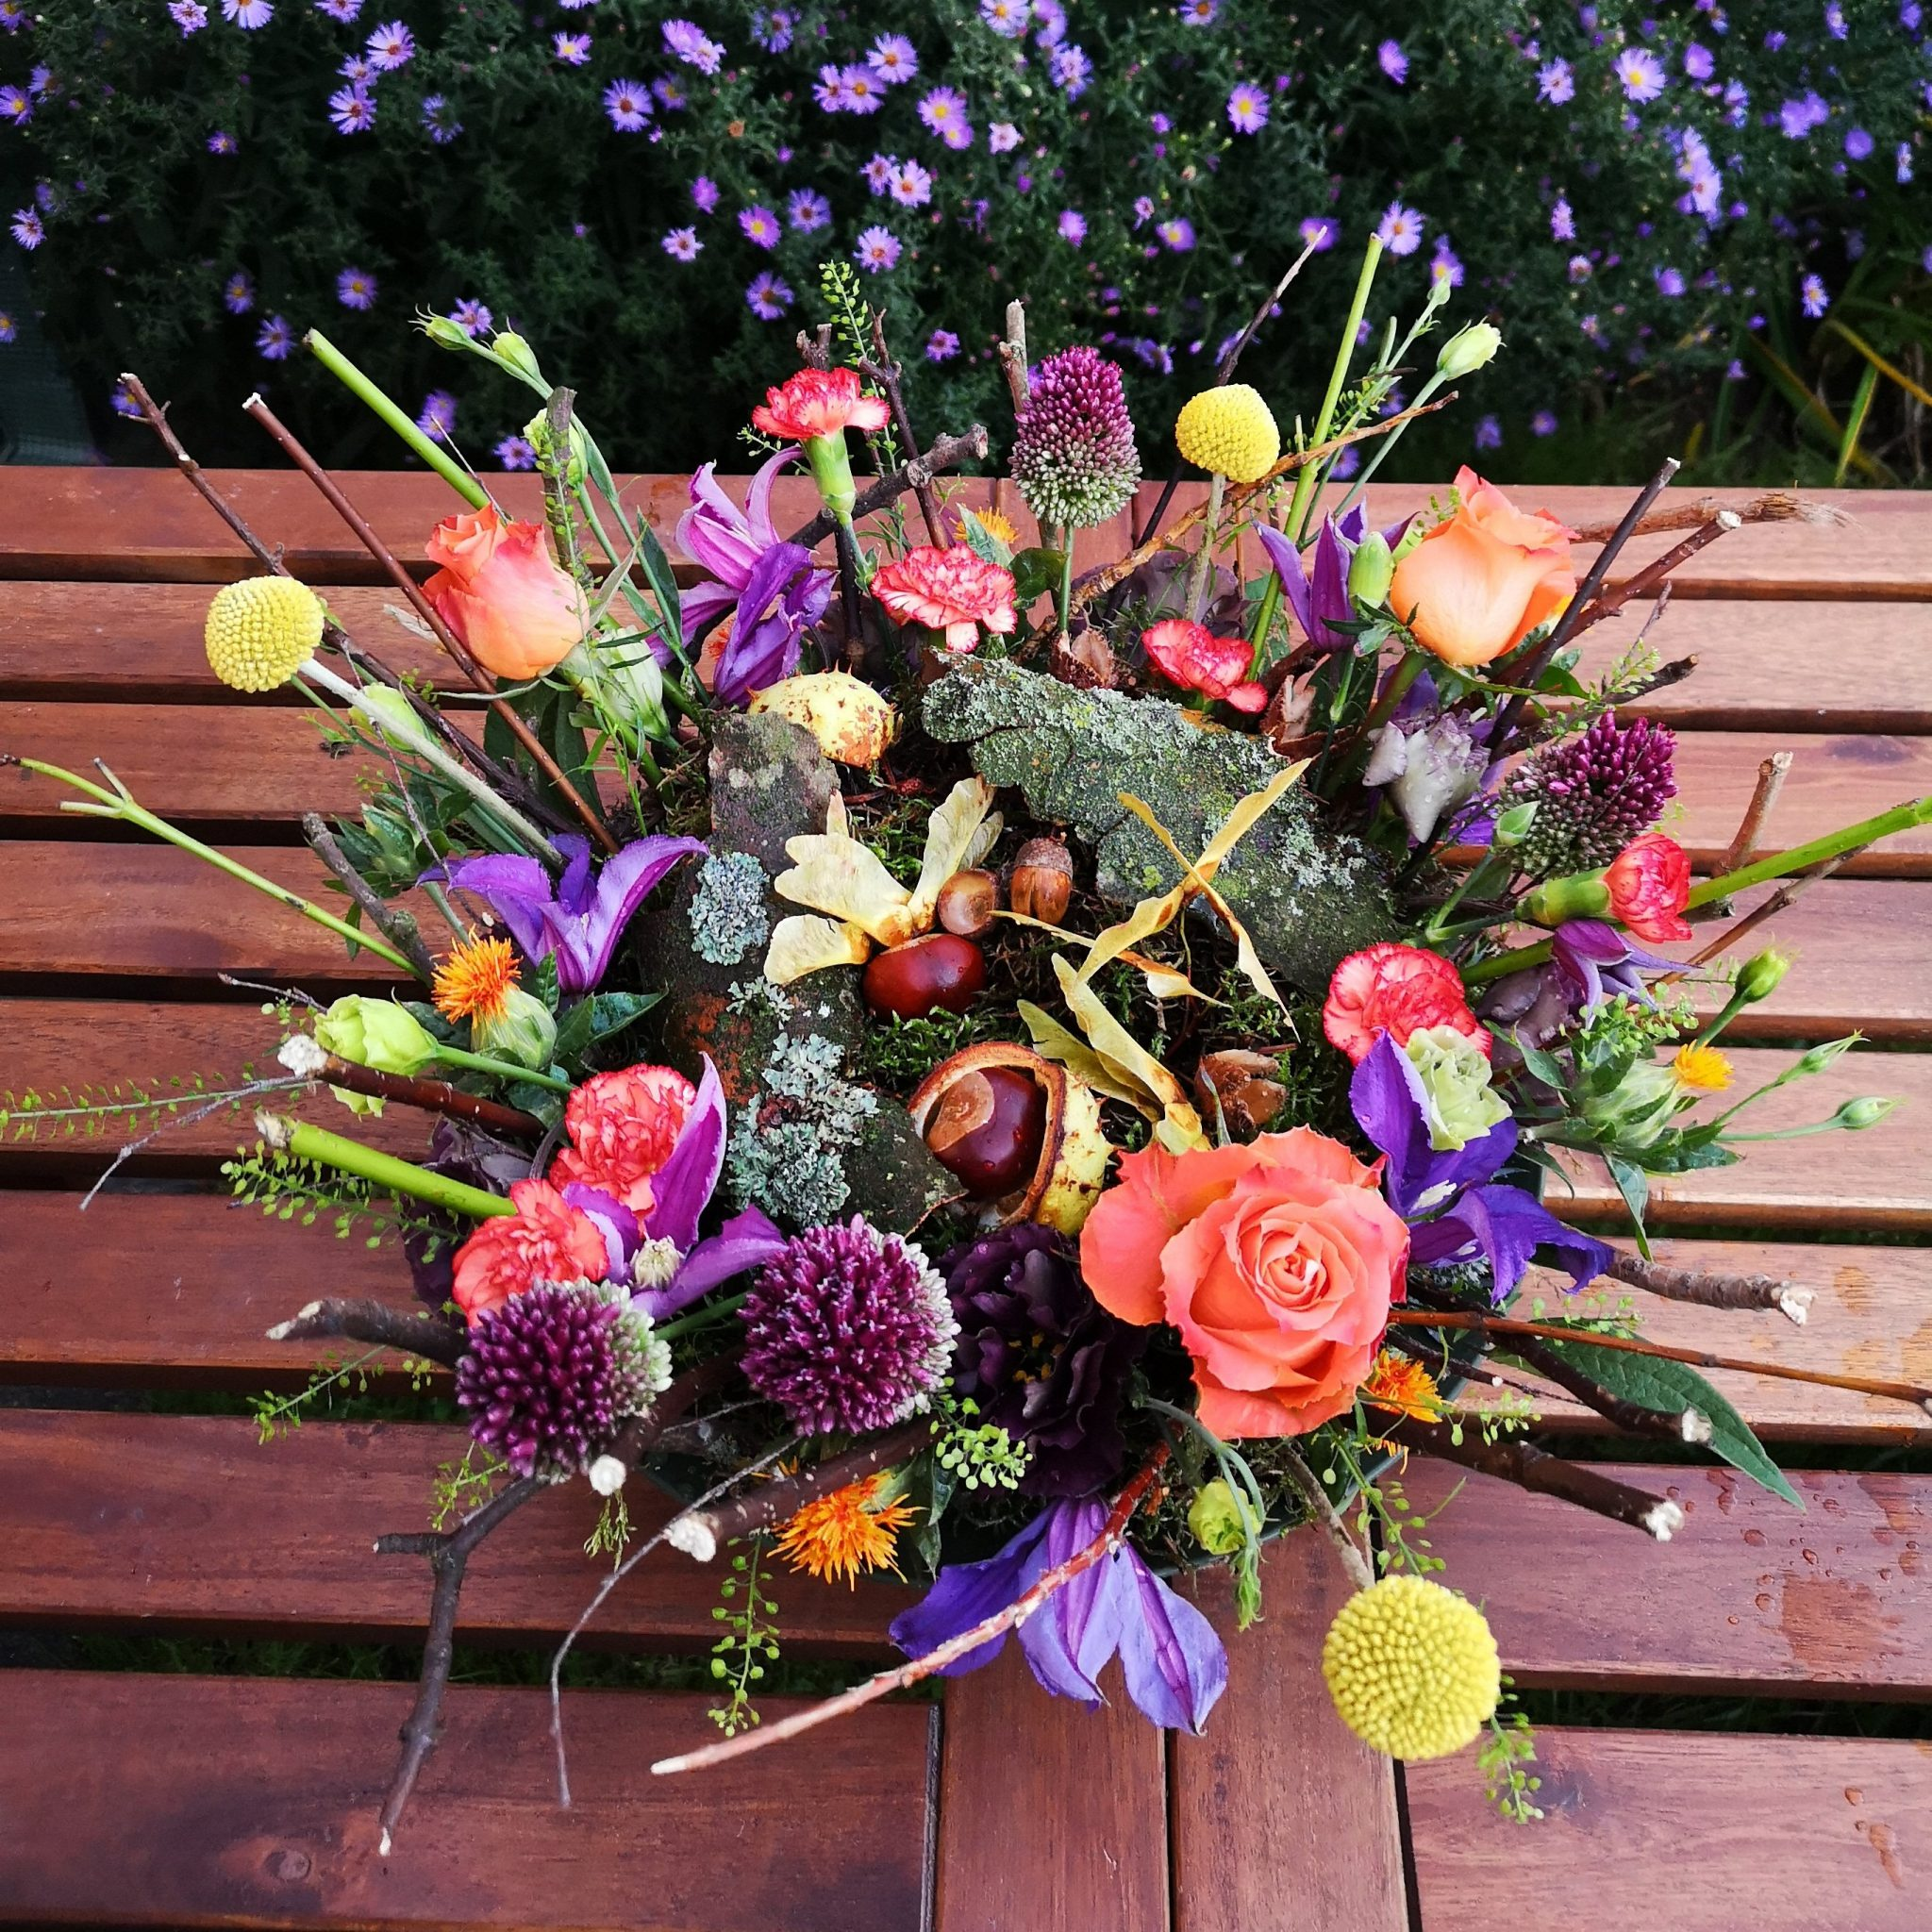 Autumn Table Centrepiece